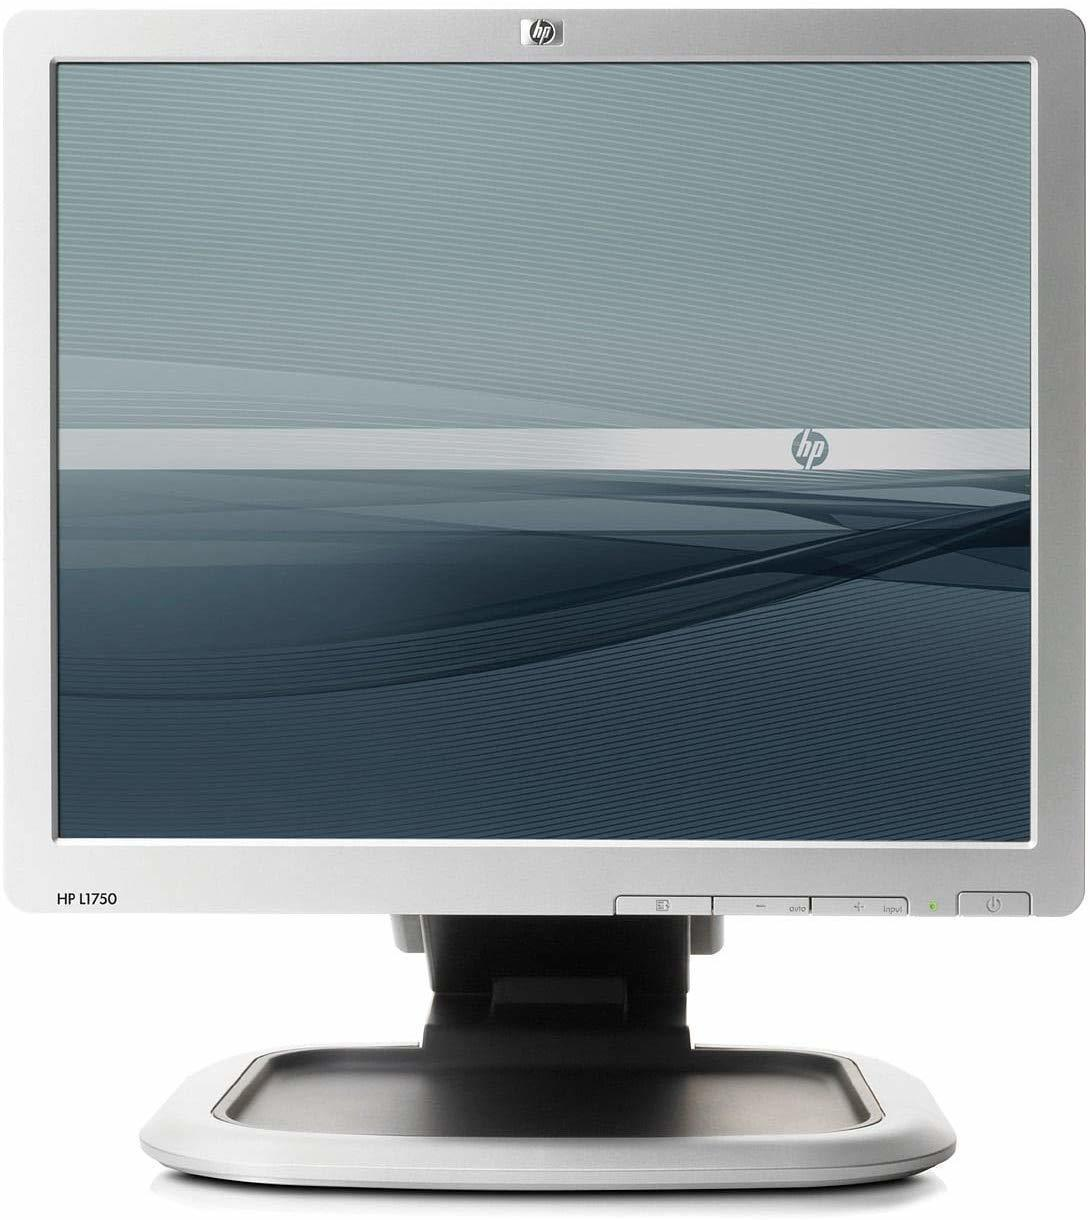 HP L inch LCD monitor in excellent working order